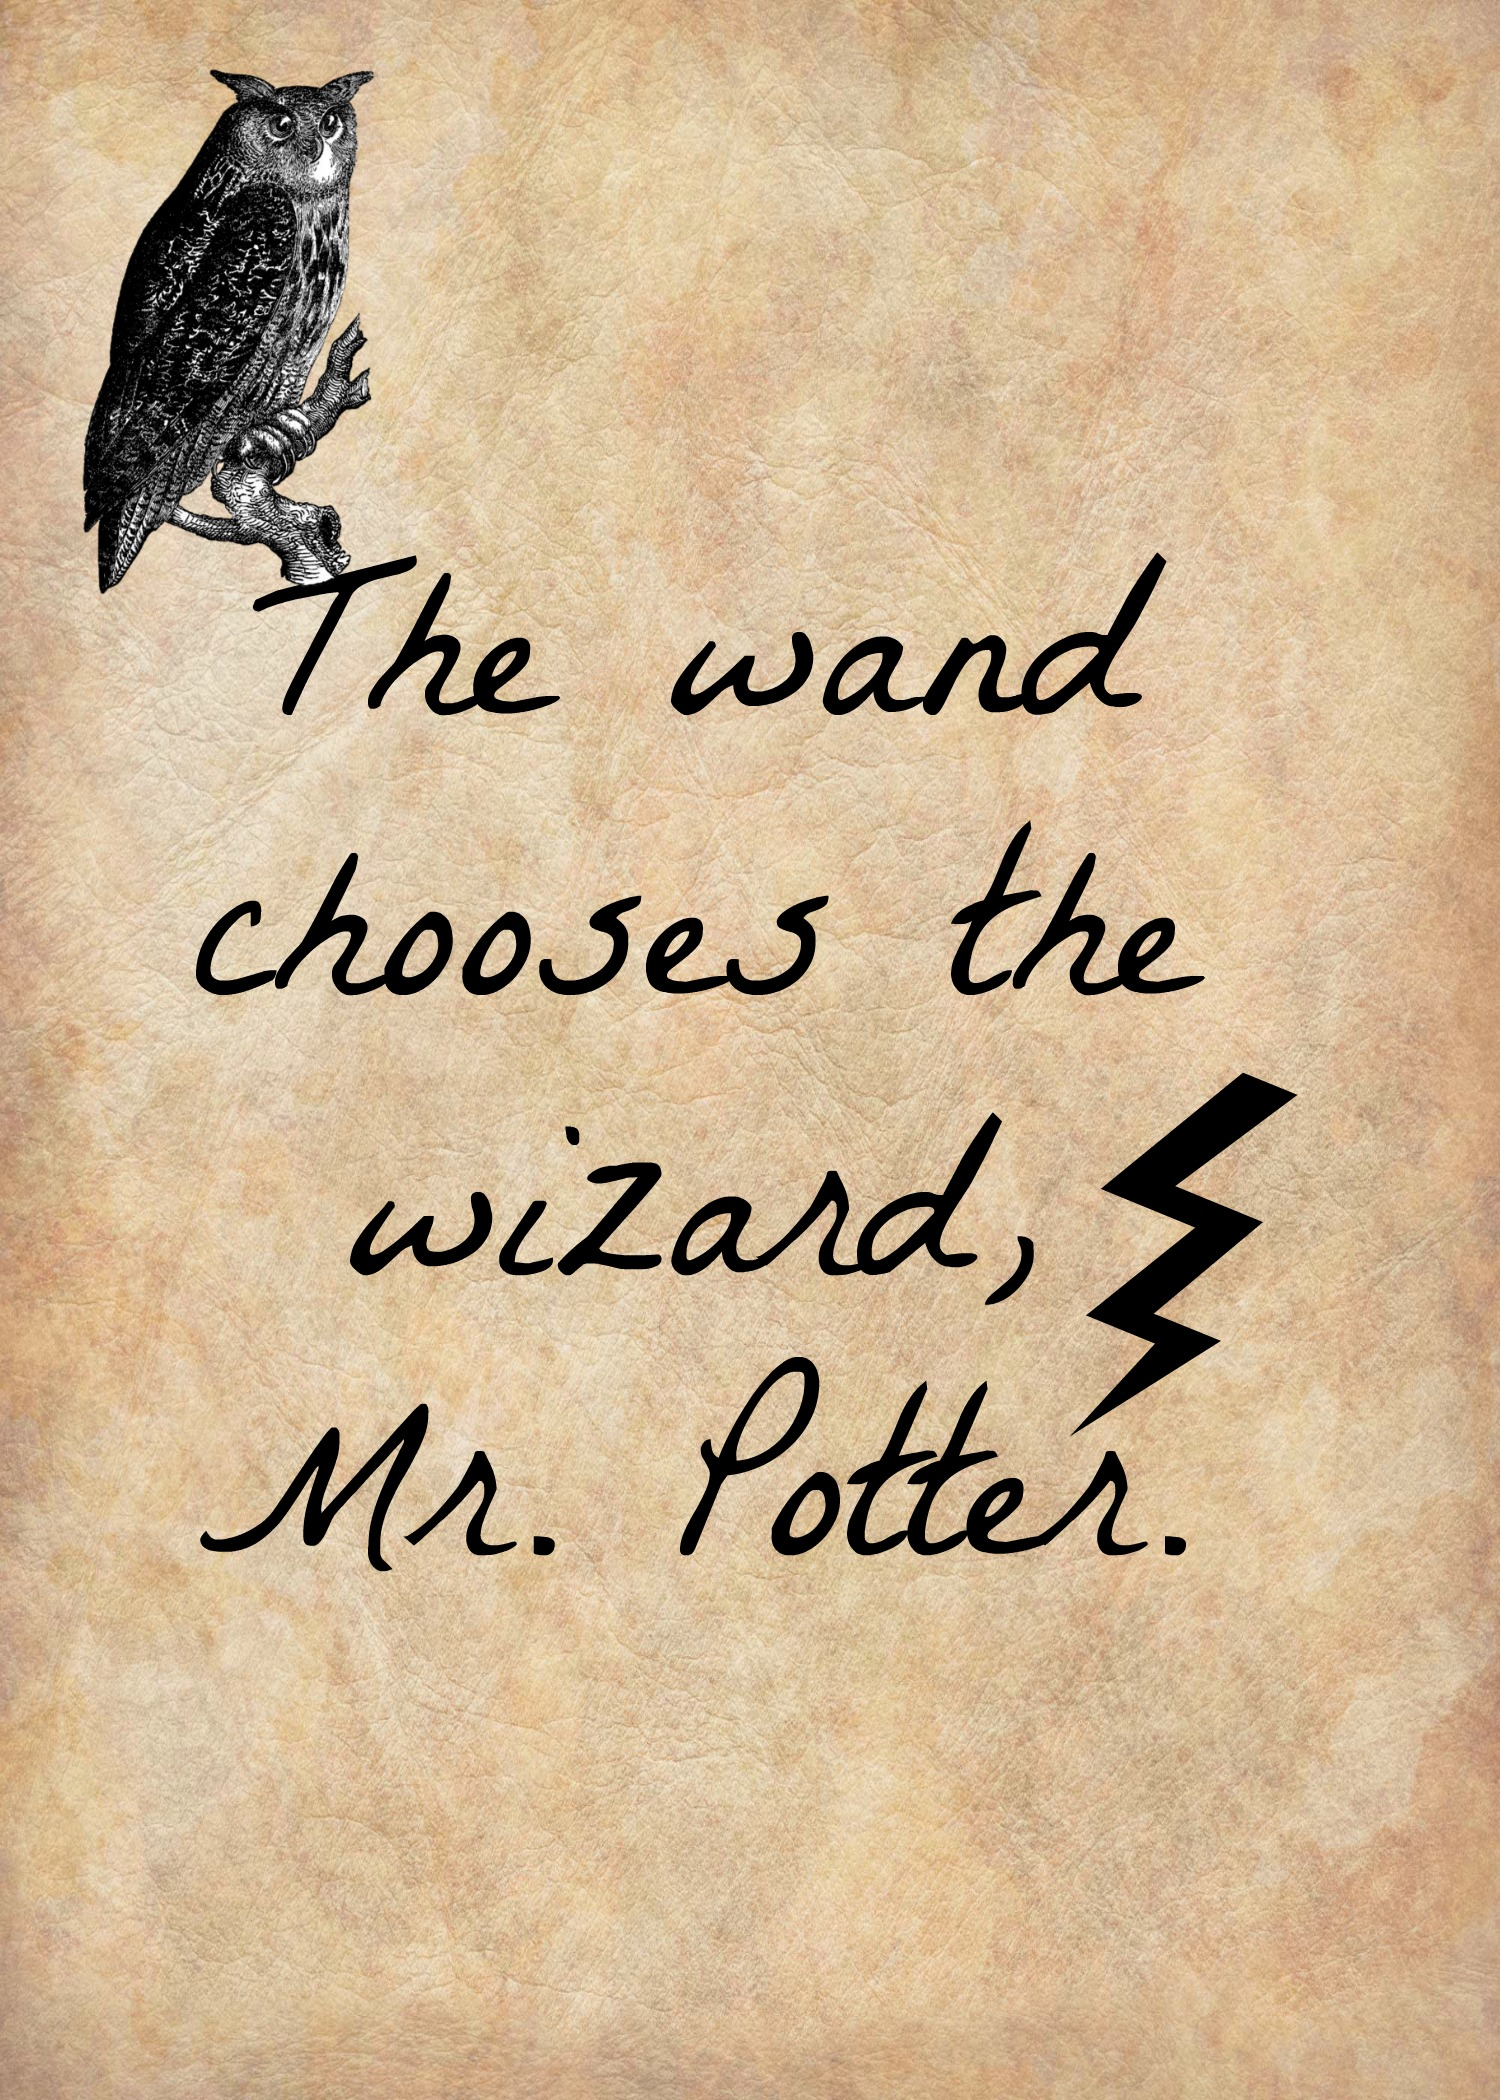 Impertinent image pertaining to printable harry potter quotes